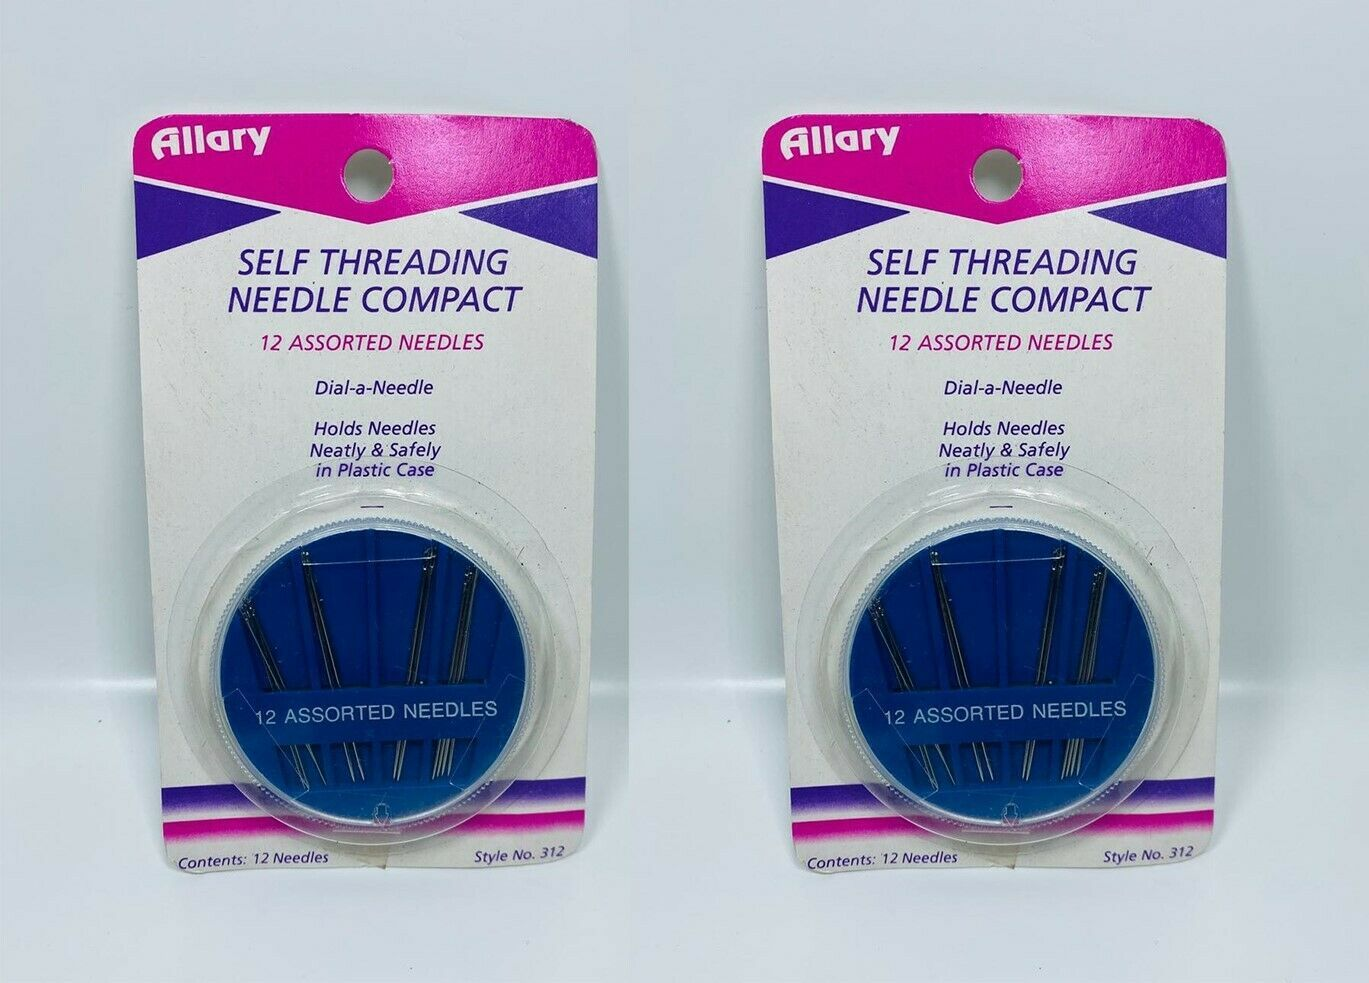 LOT OF 2 Allary Self threading Needle Compact 12 Assorted Needles - $6.92